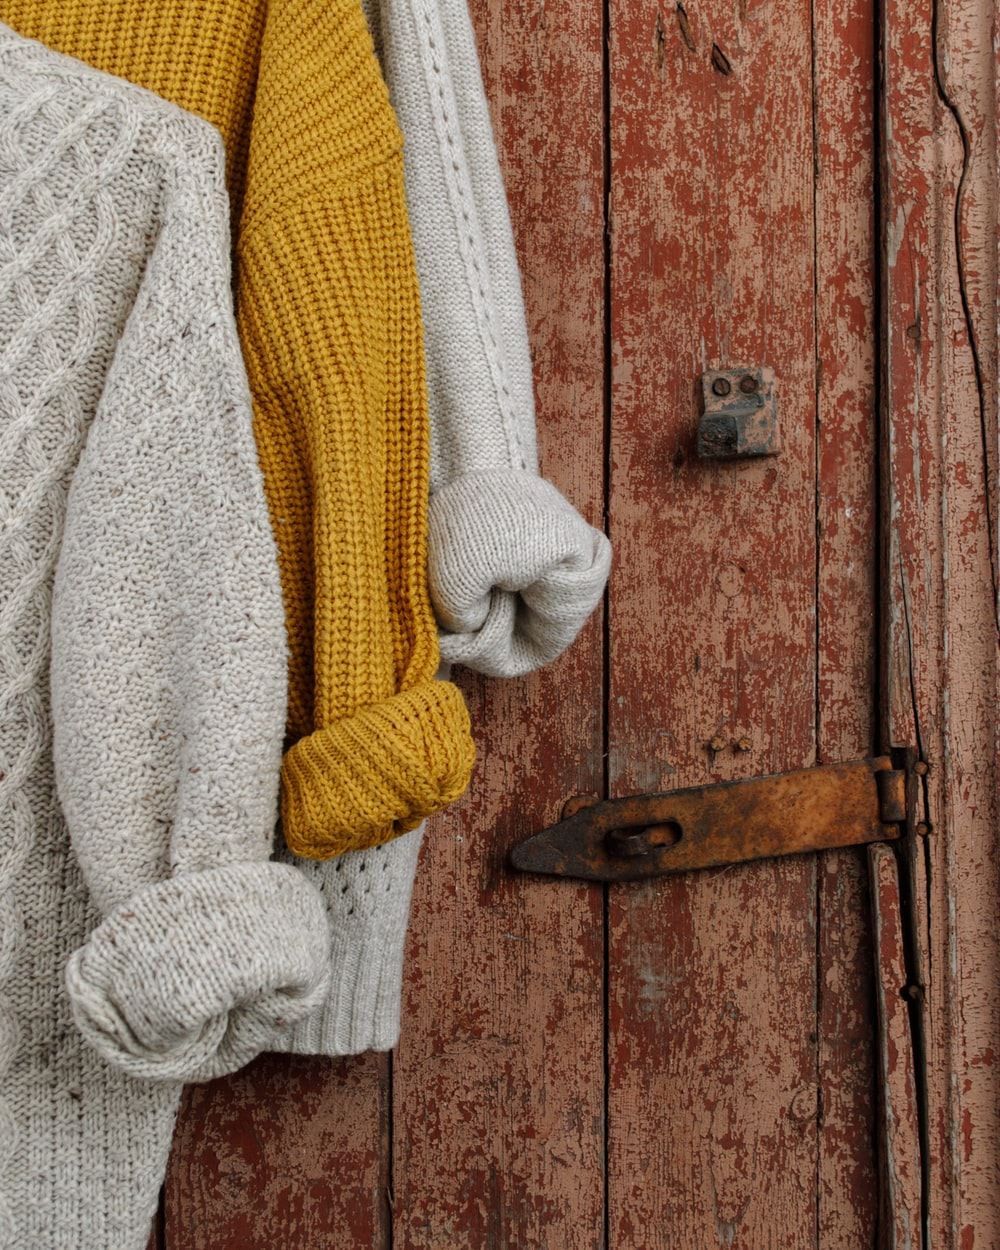 yellow, beige, and grey knitted shirts